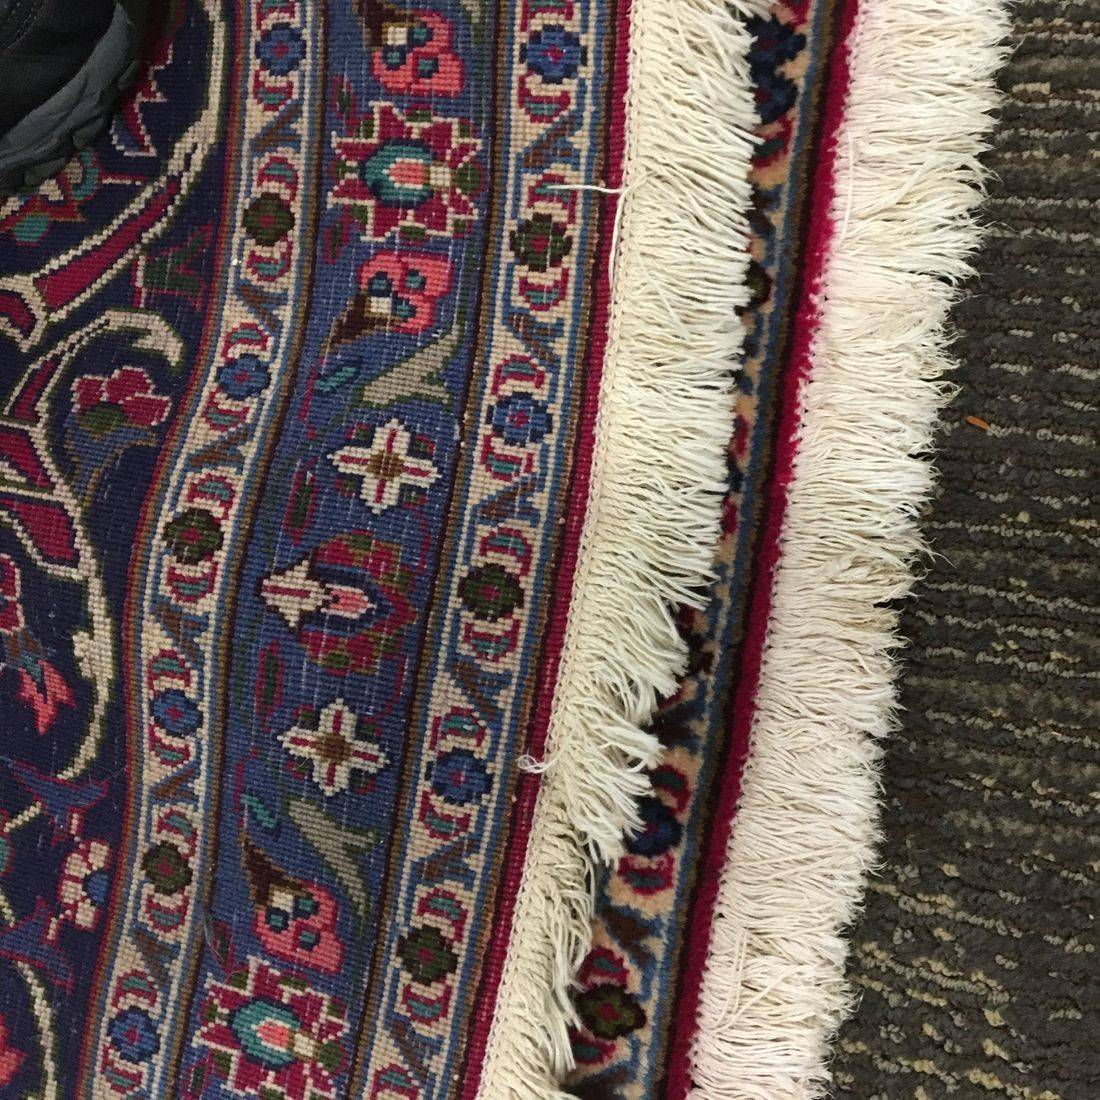 Custom Colour Carpets & Rugs, Carpet Dyeing,  Tea Washing Area Rug Fringes